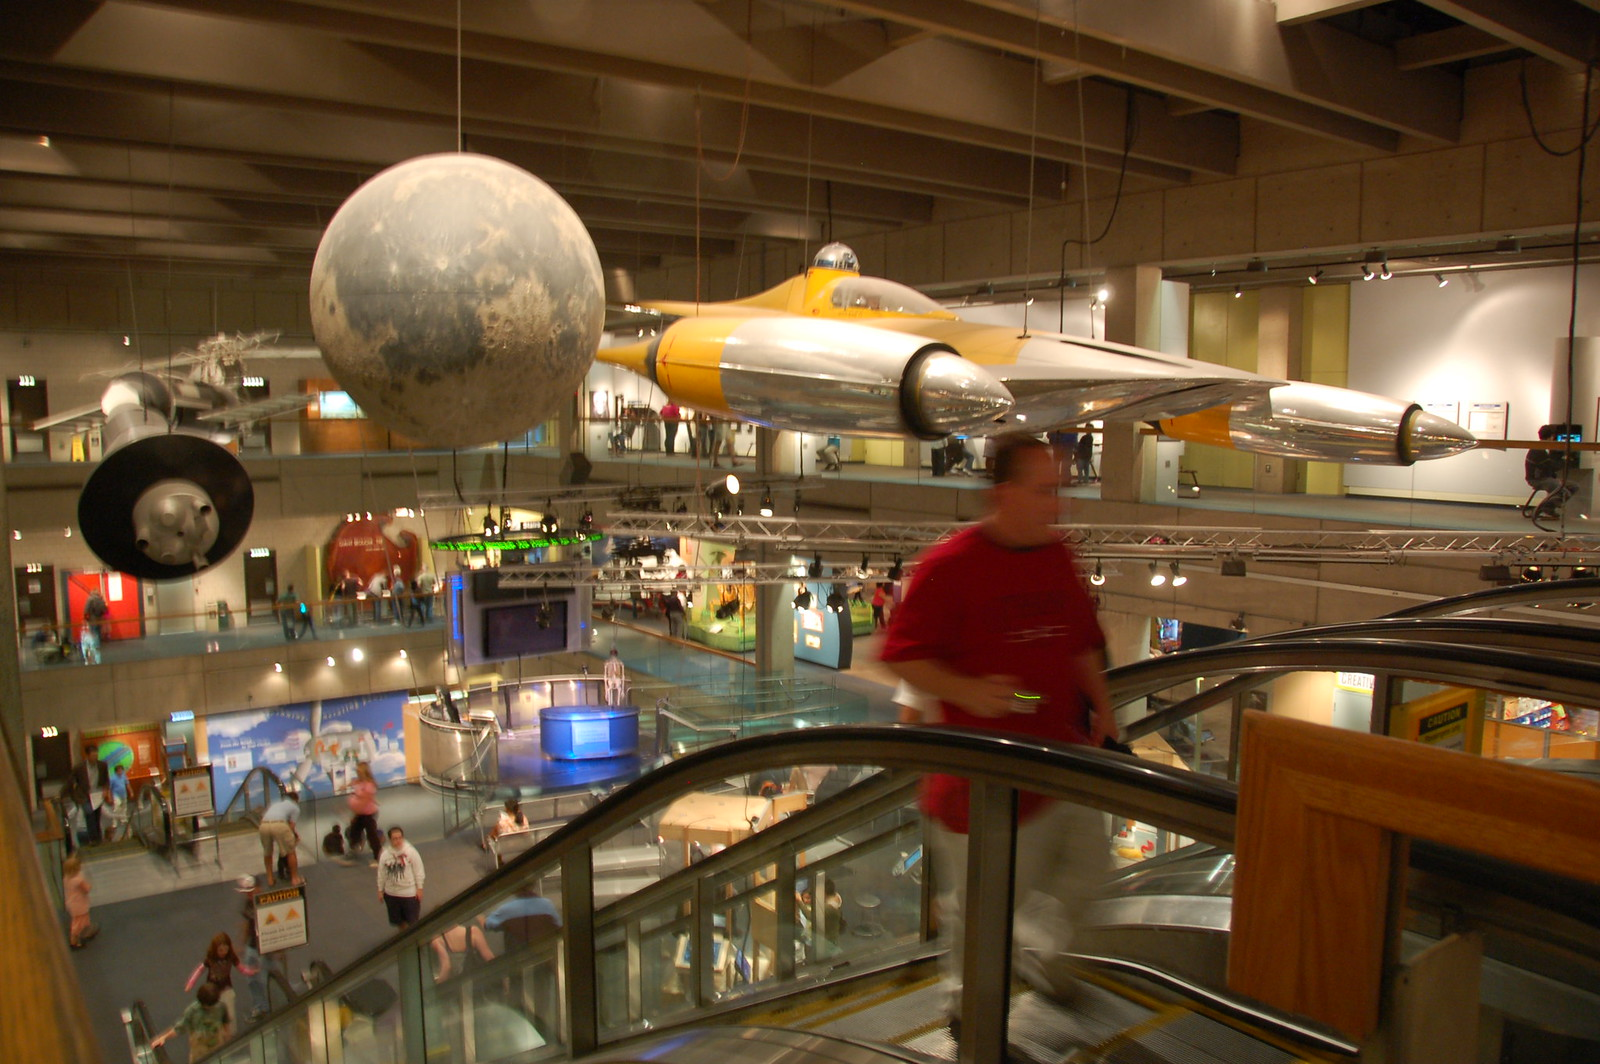 Boston Museum of Science: Star Wars Naboo fighter craft, with R2-D2